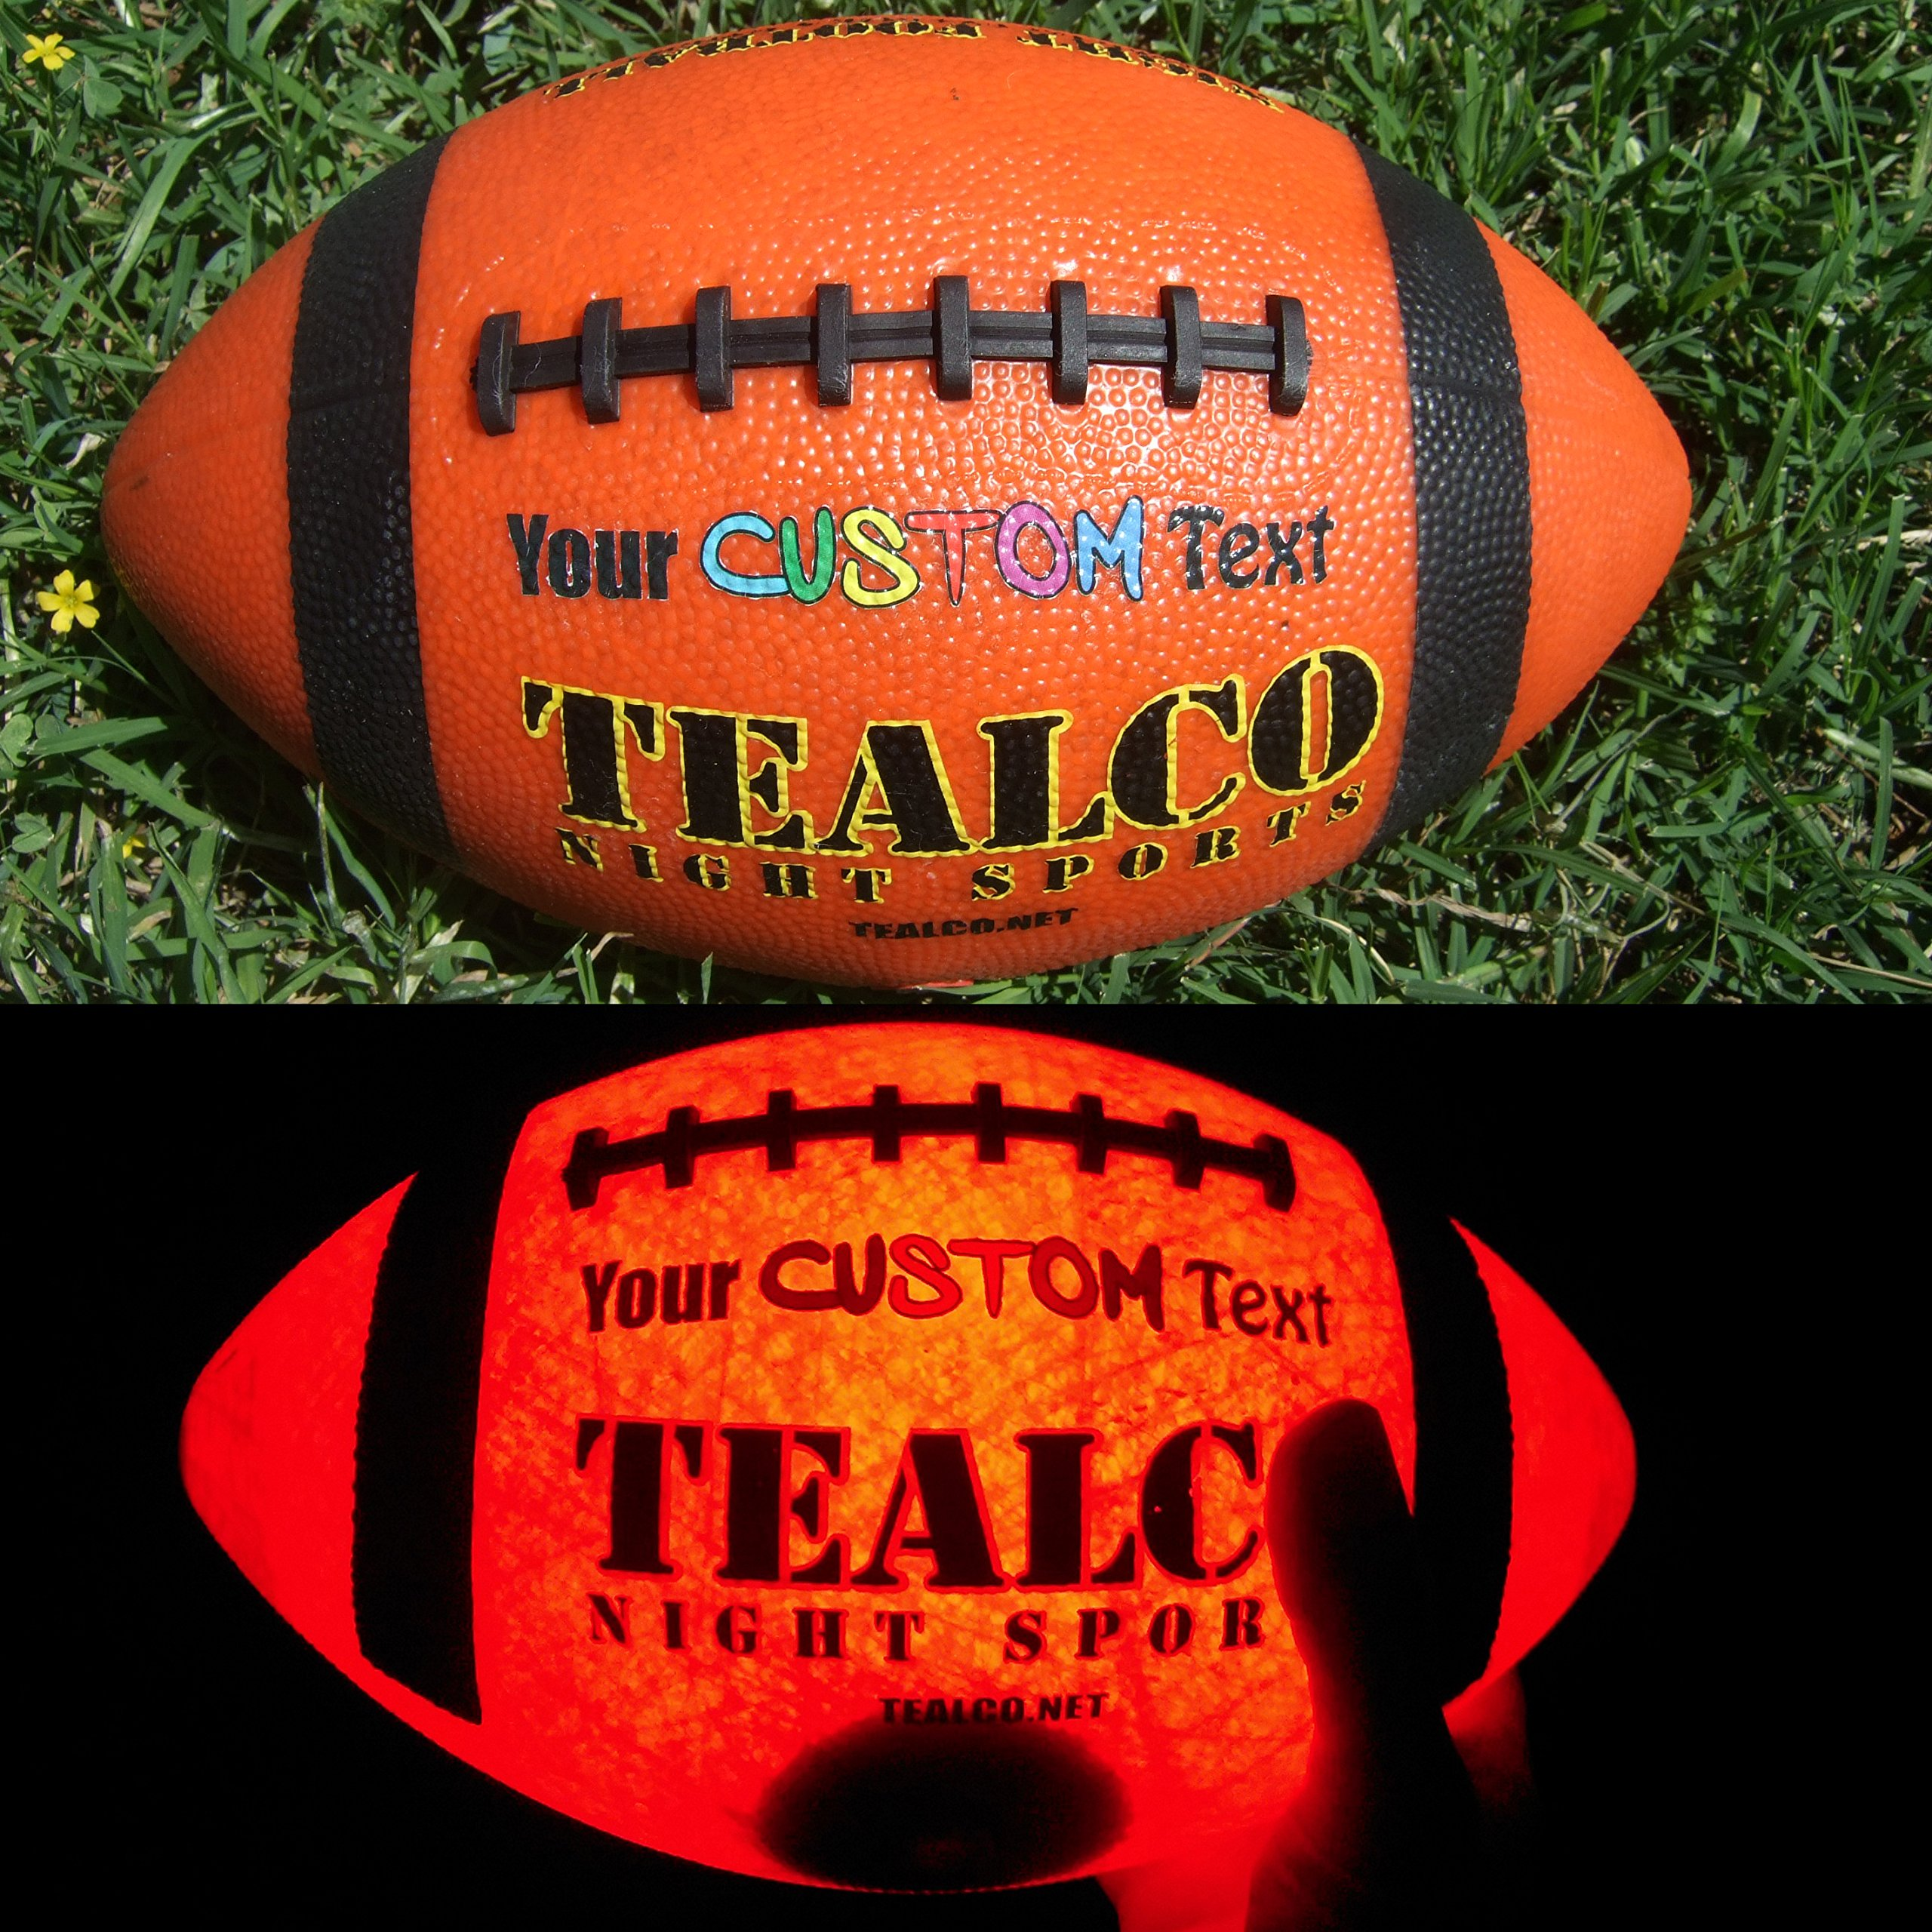 TealCo Night Sports Custom Print Light-Up Youth-Size Football Free Accessories While Supplies Last! (Glow in The Dark)